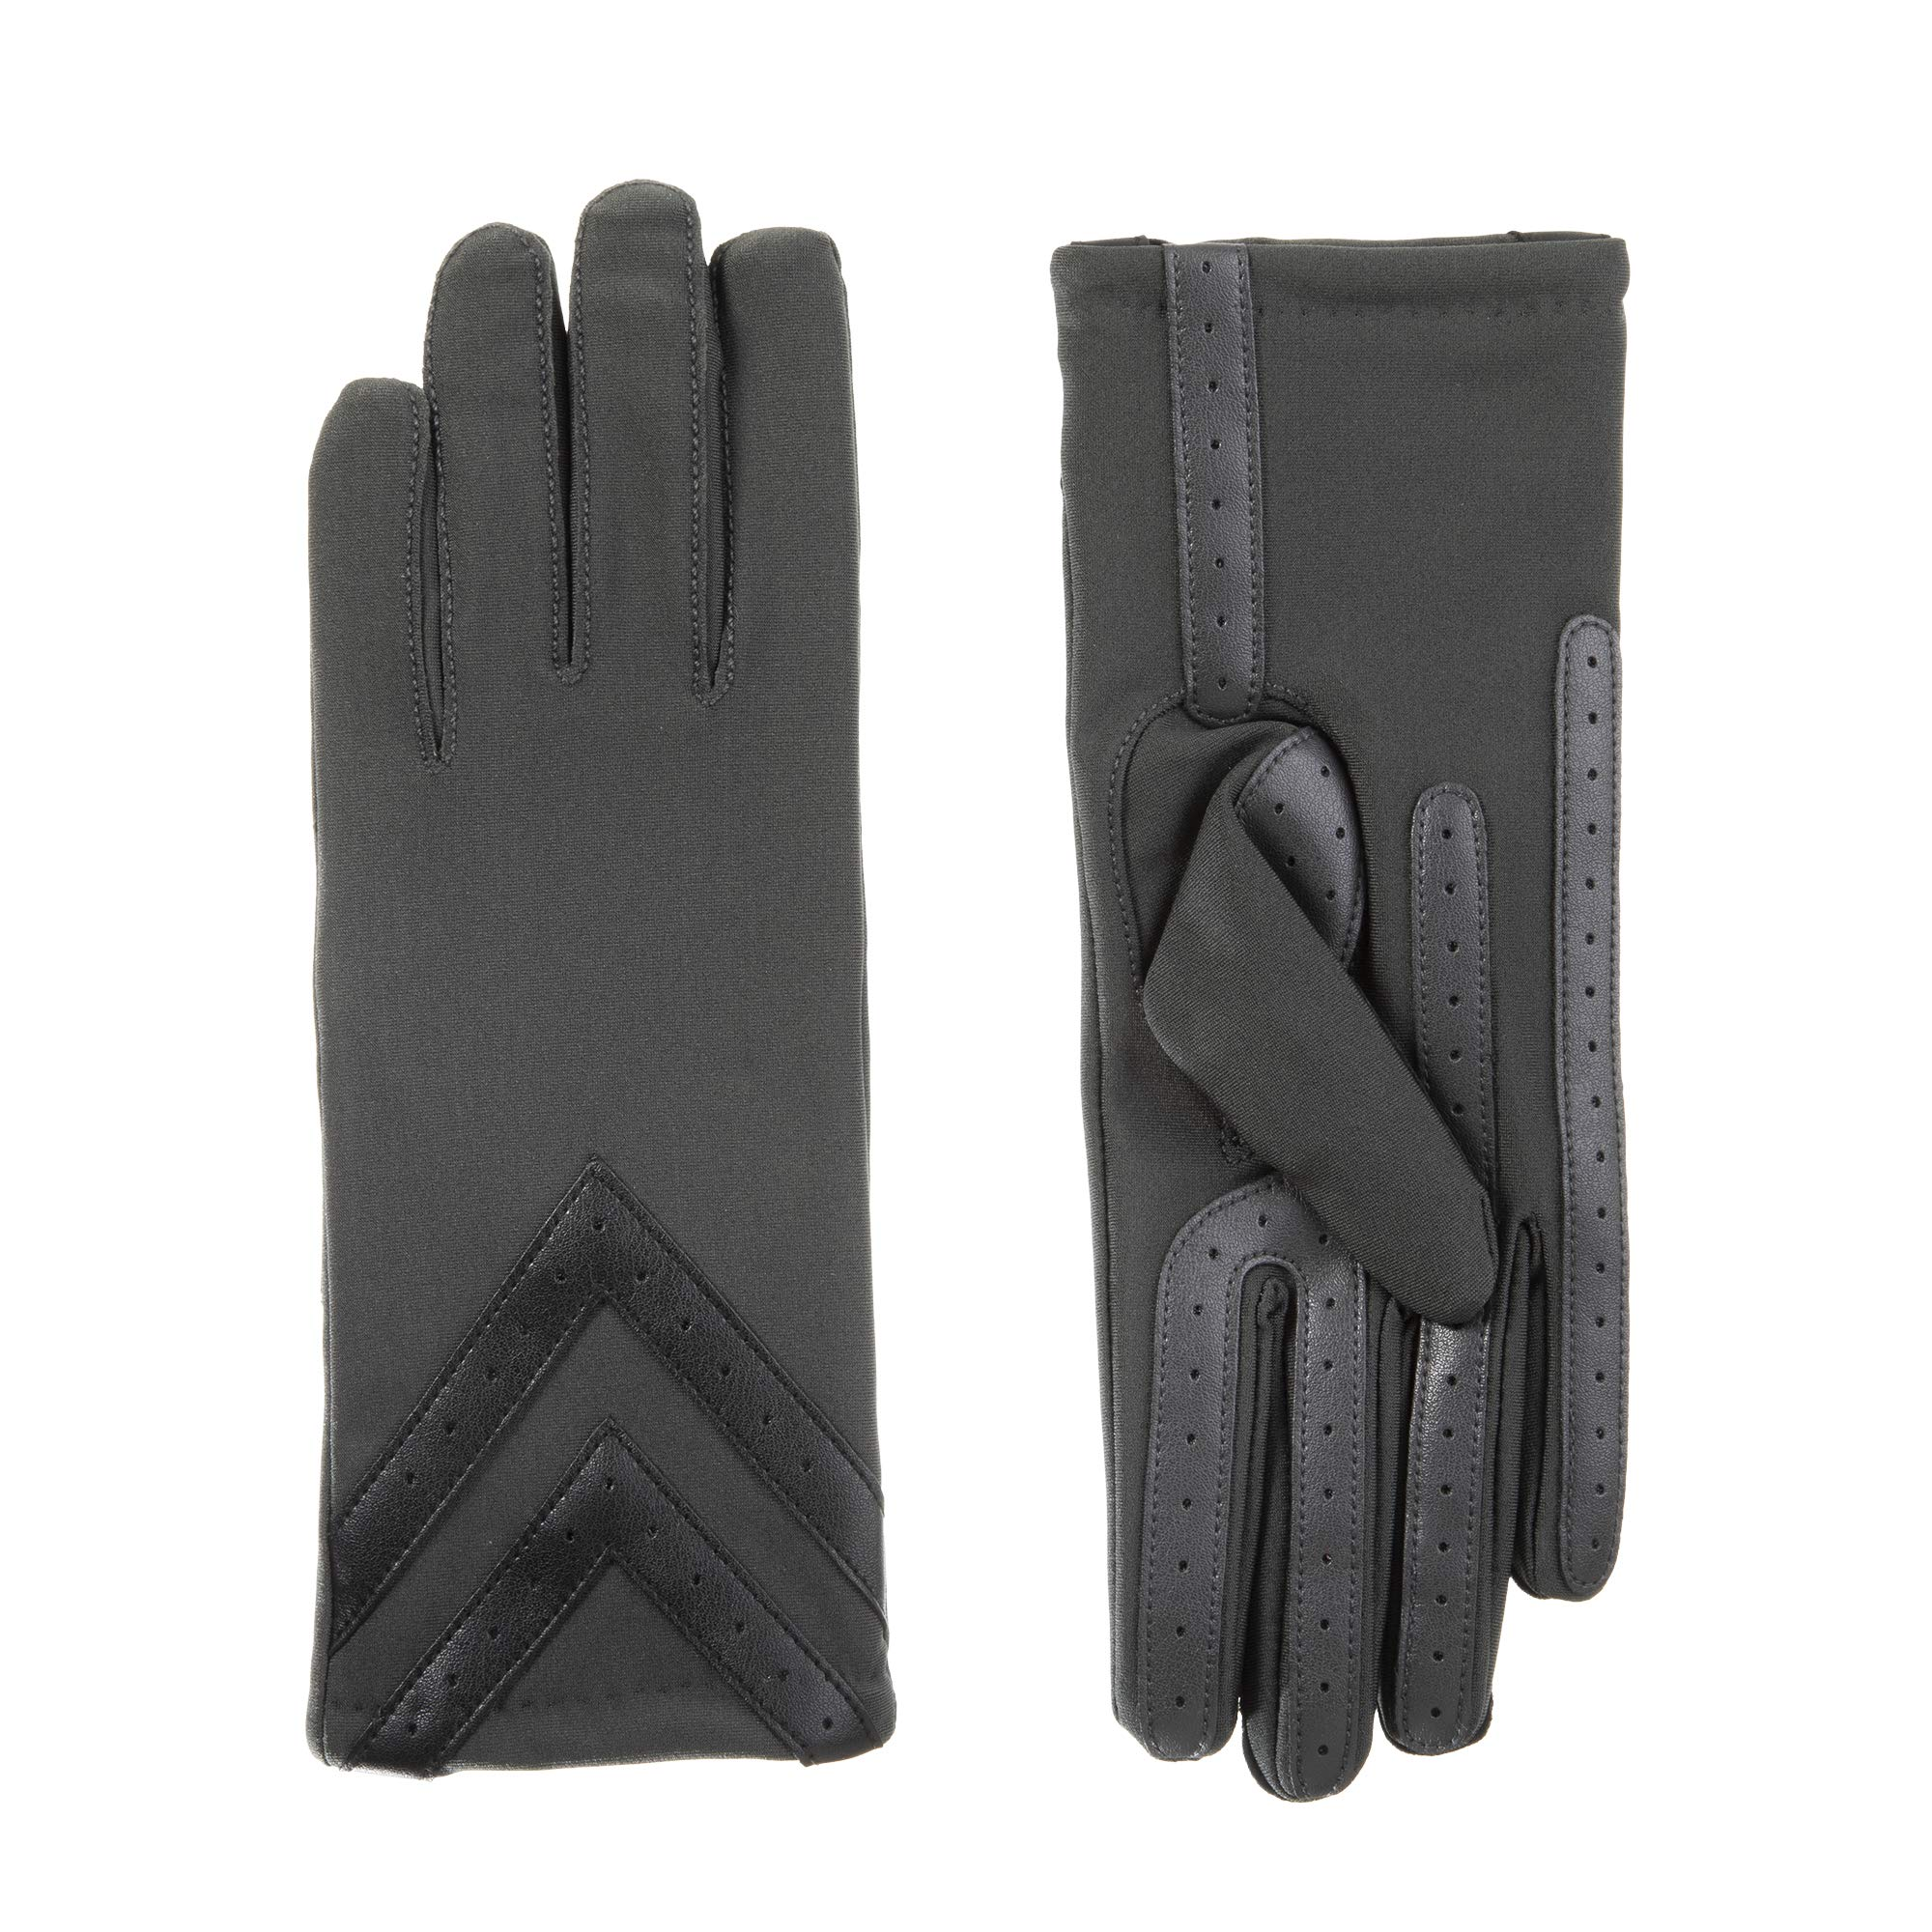 ISOTONER Spandex Stretch Women's Gloves, Touchscreen, Charcoal, L/XL